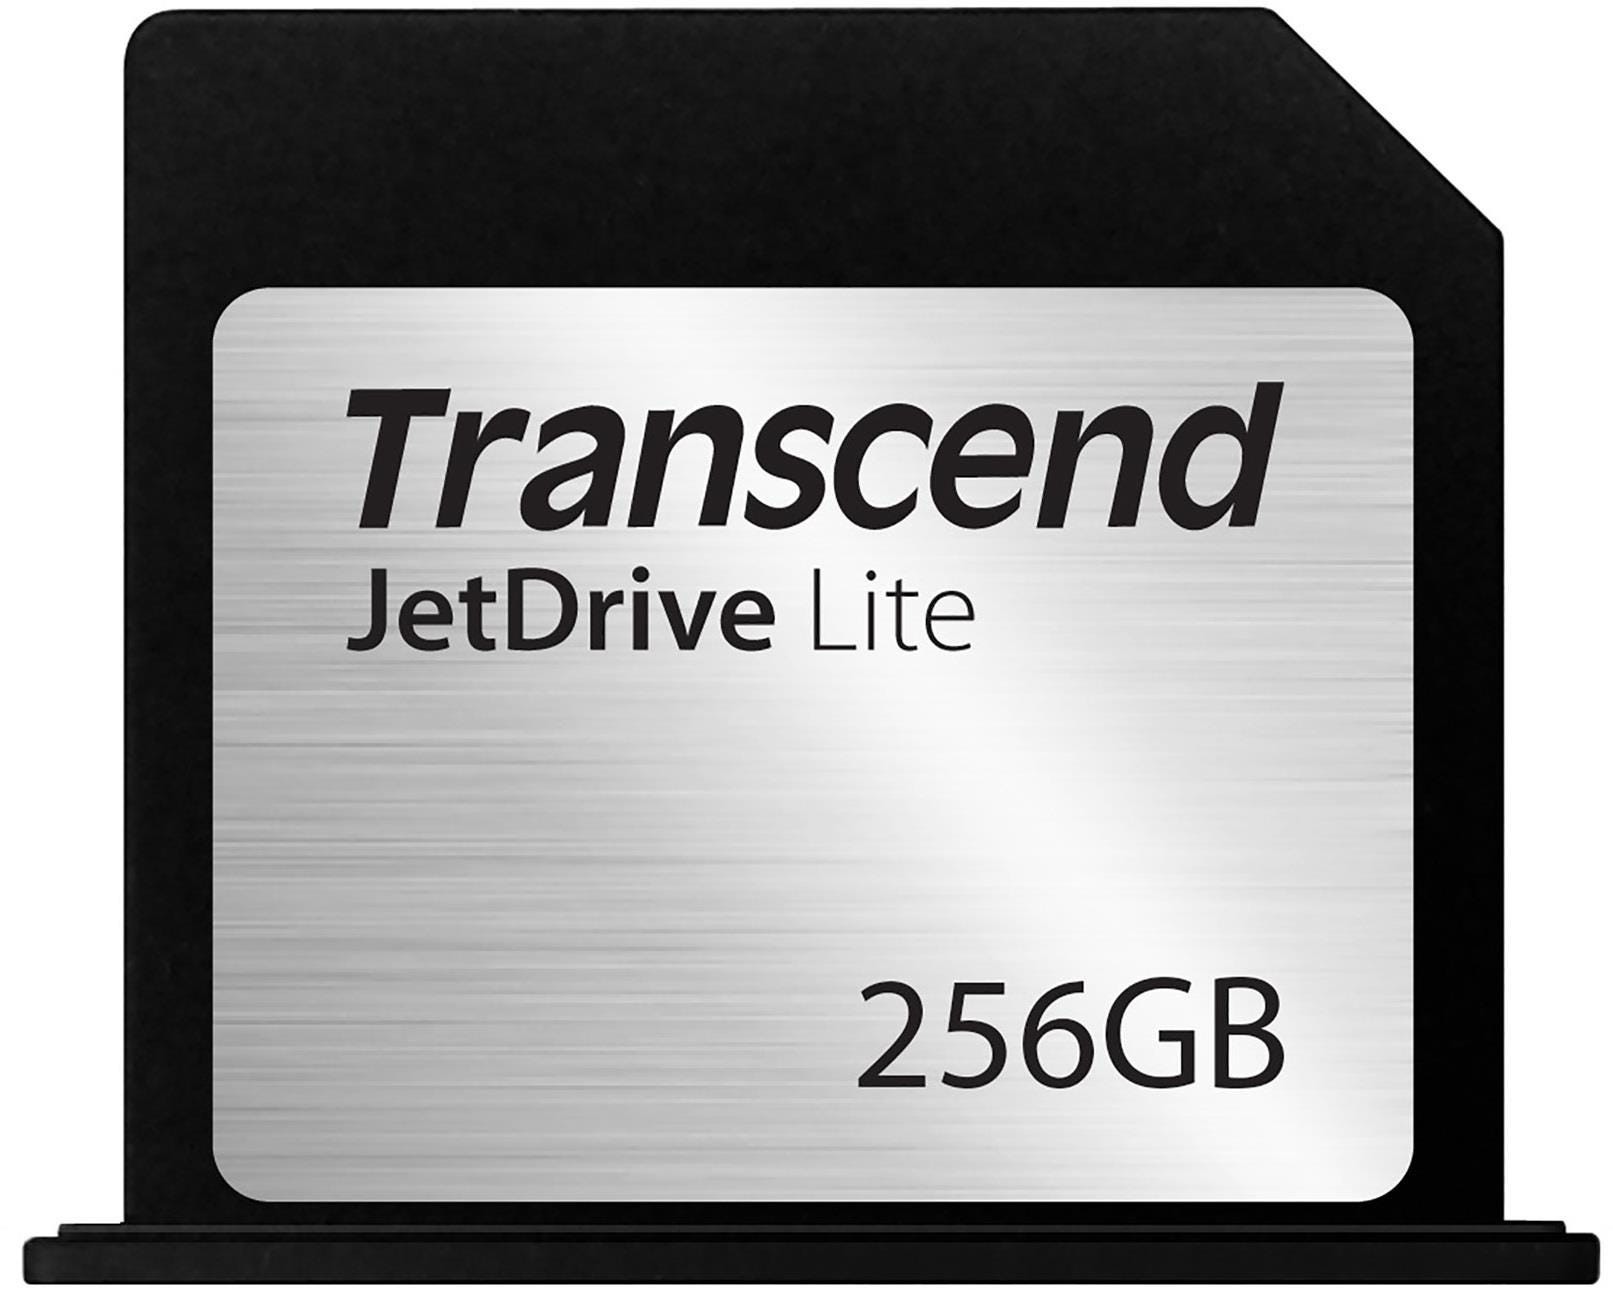 Transcend JetDrive Lite 350 256 GB Storage Expansion Card